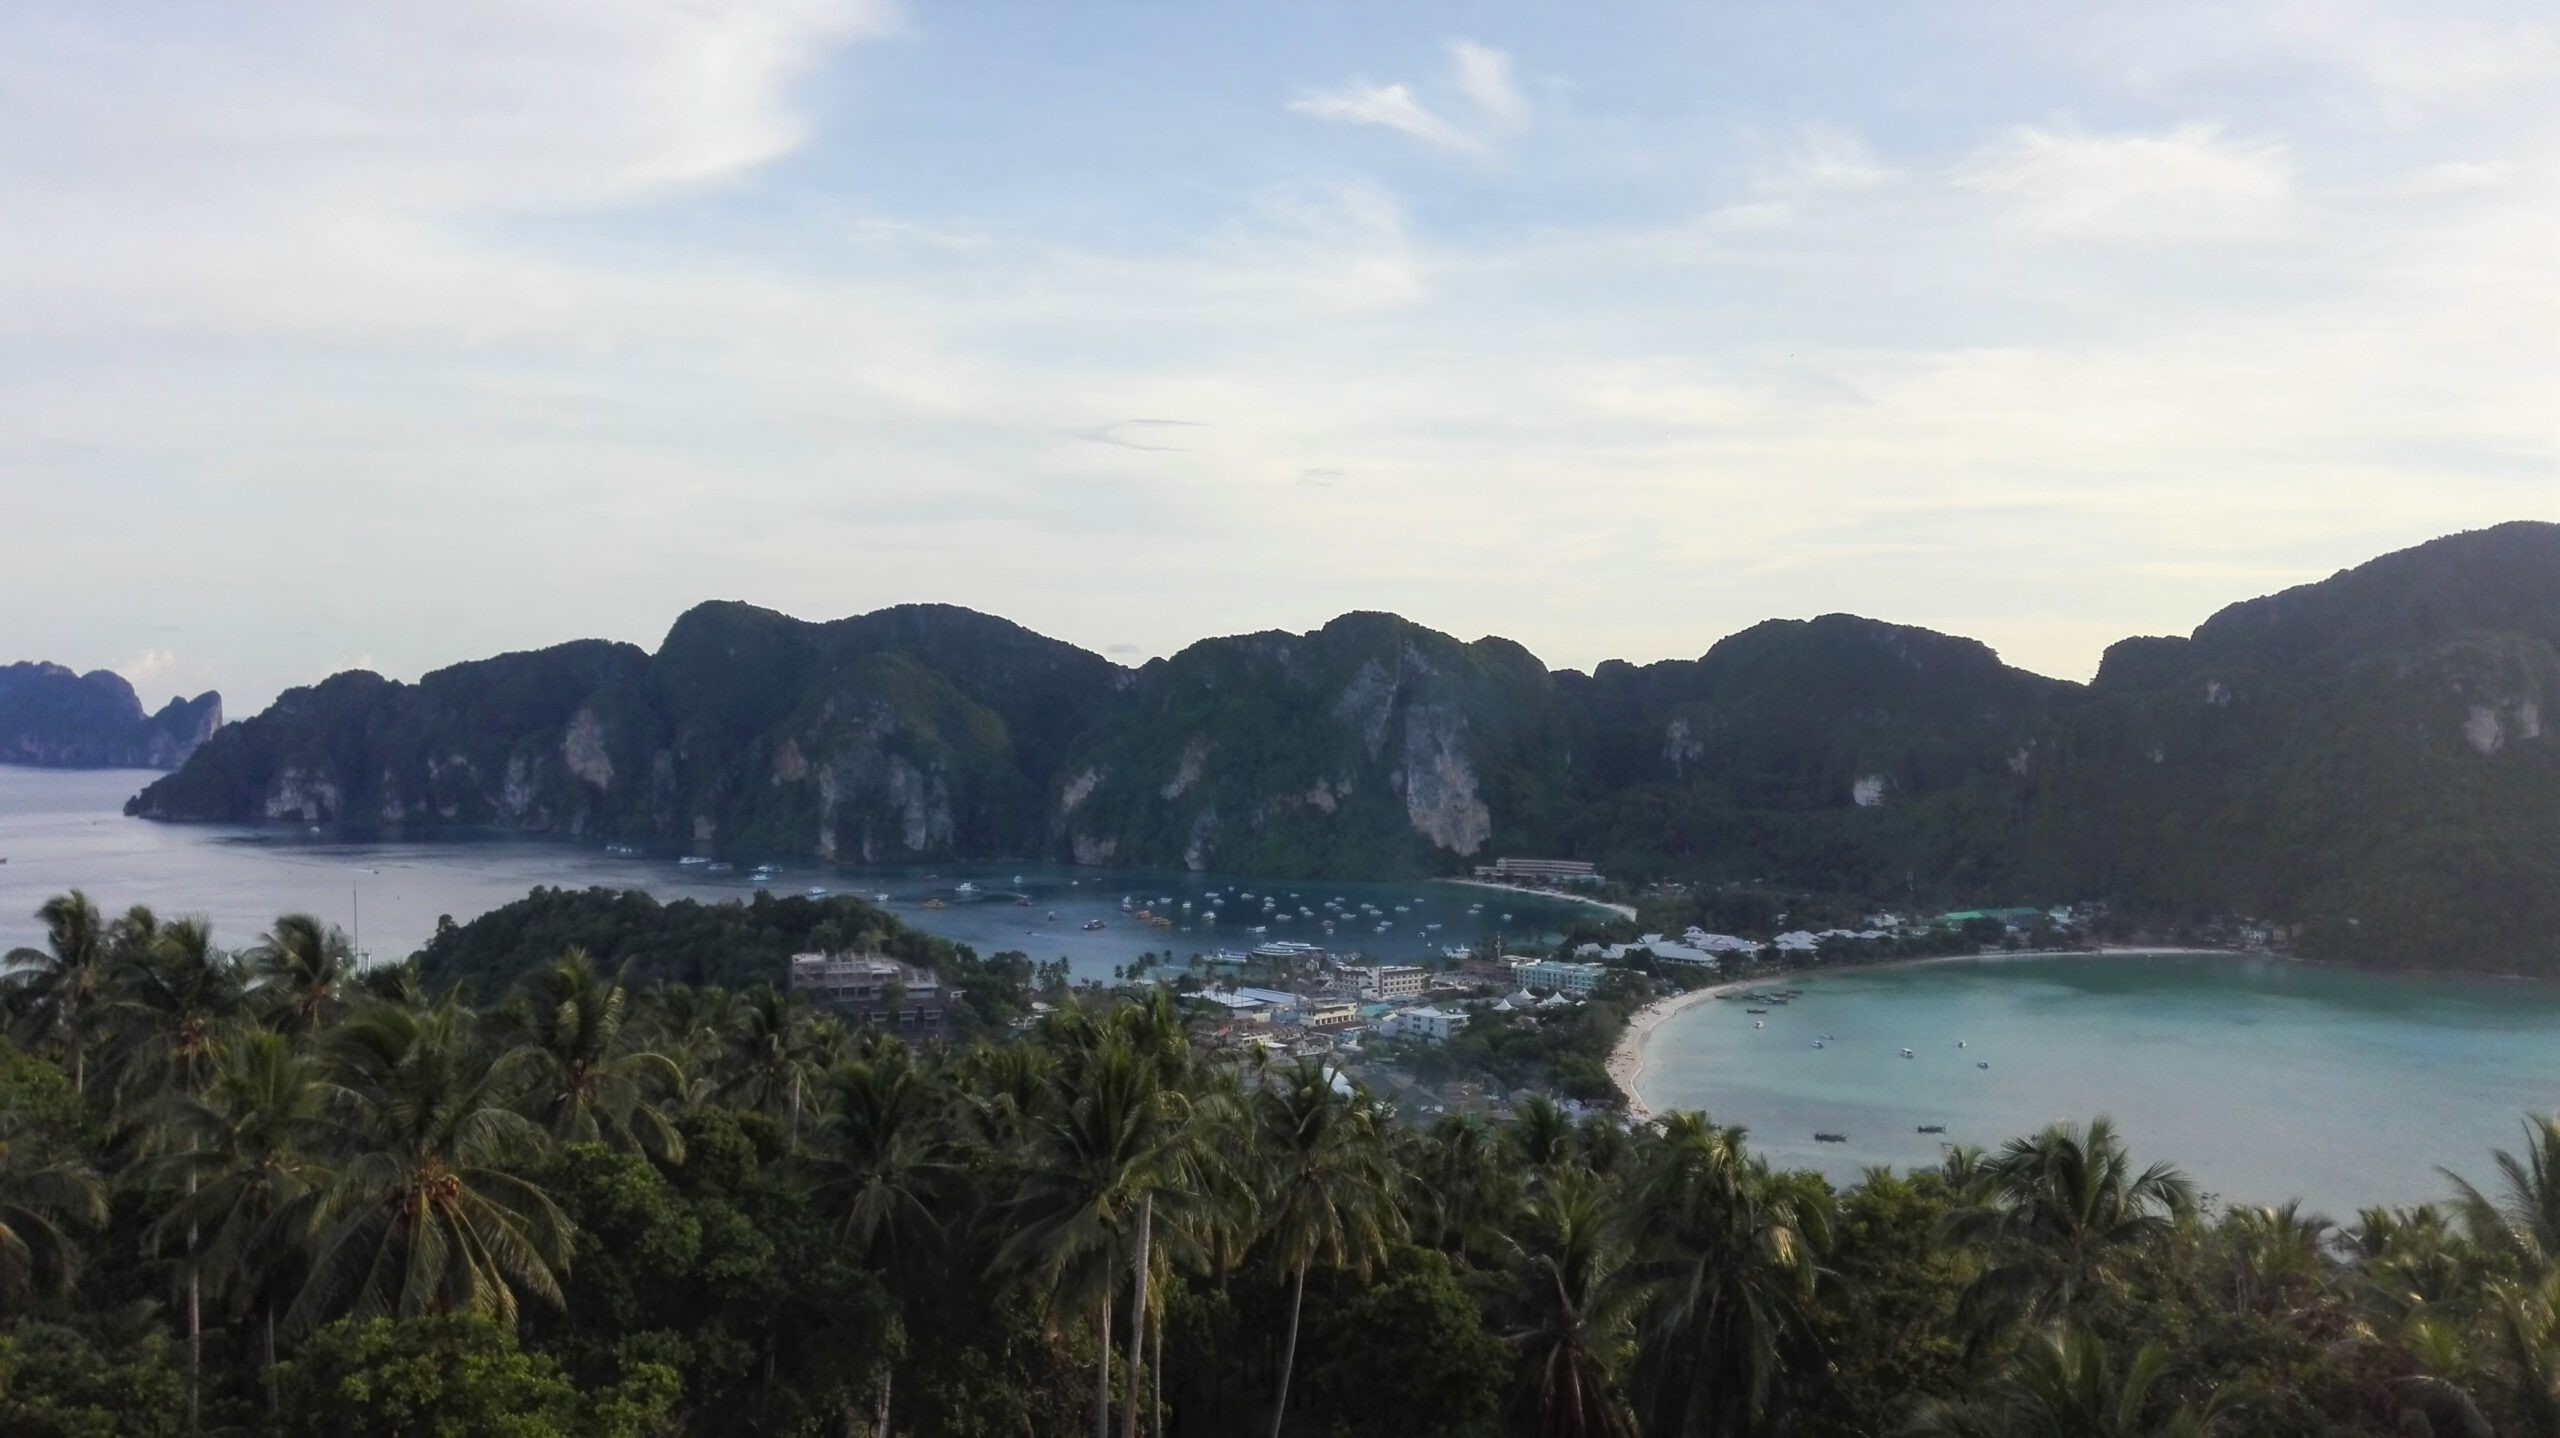 Thailand Koh Phi Phi Viewpoint scaled - Koh Phi Phi, the most famous beach in the world